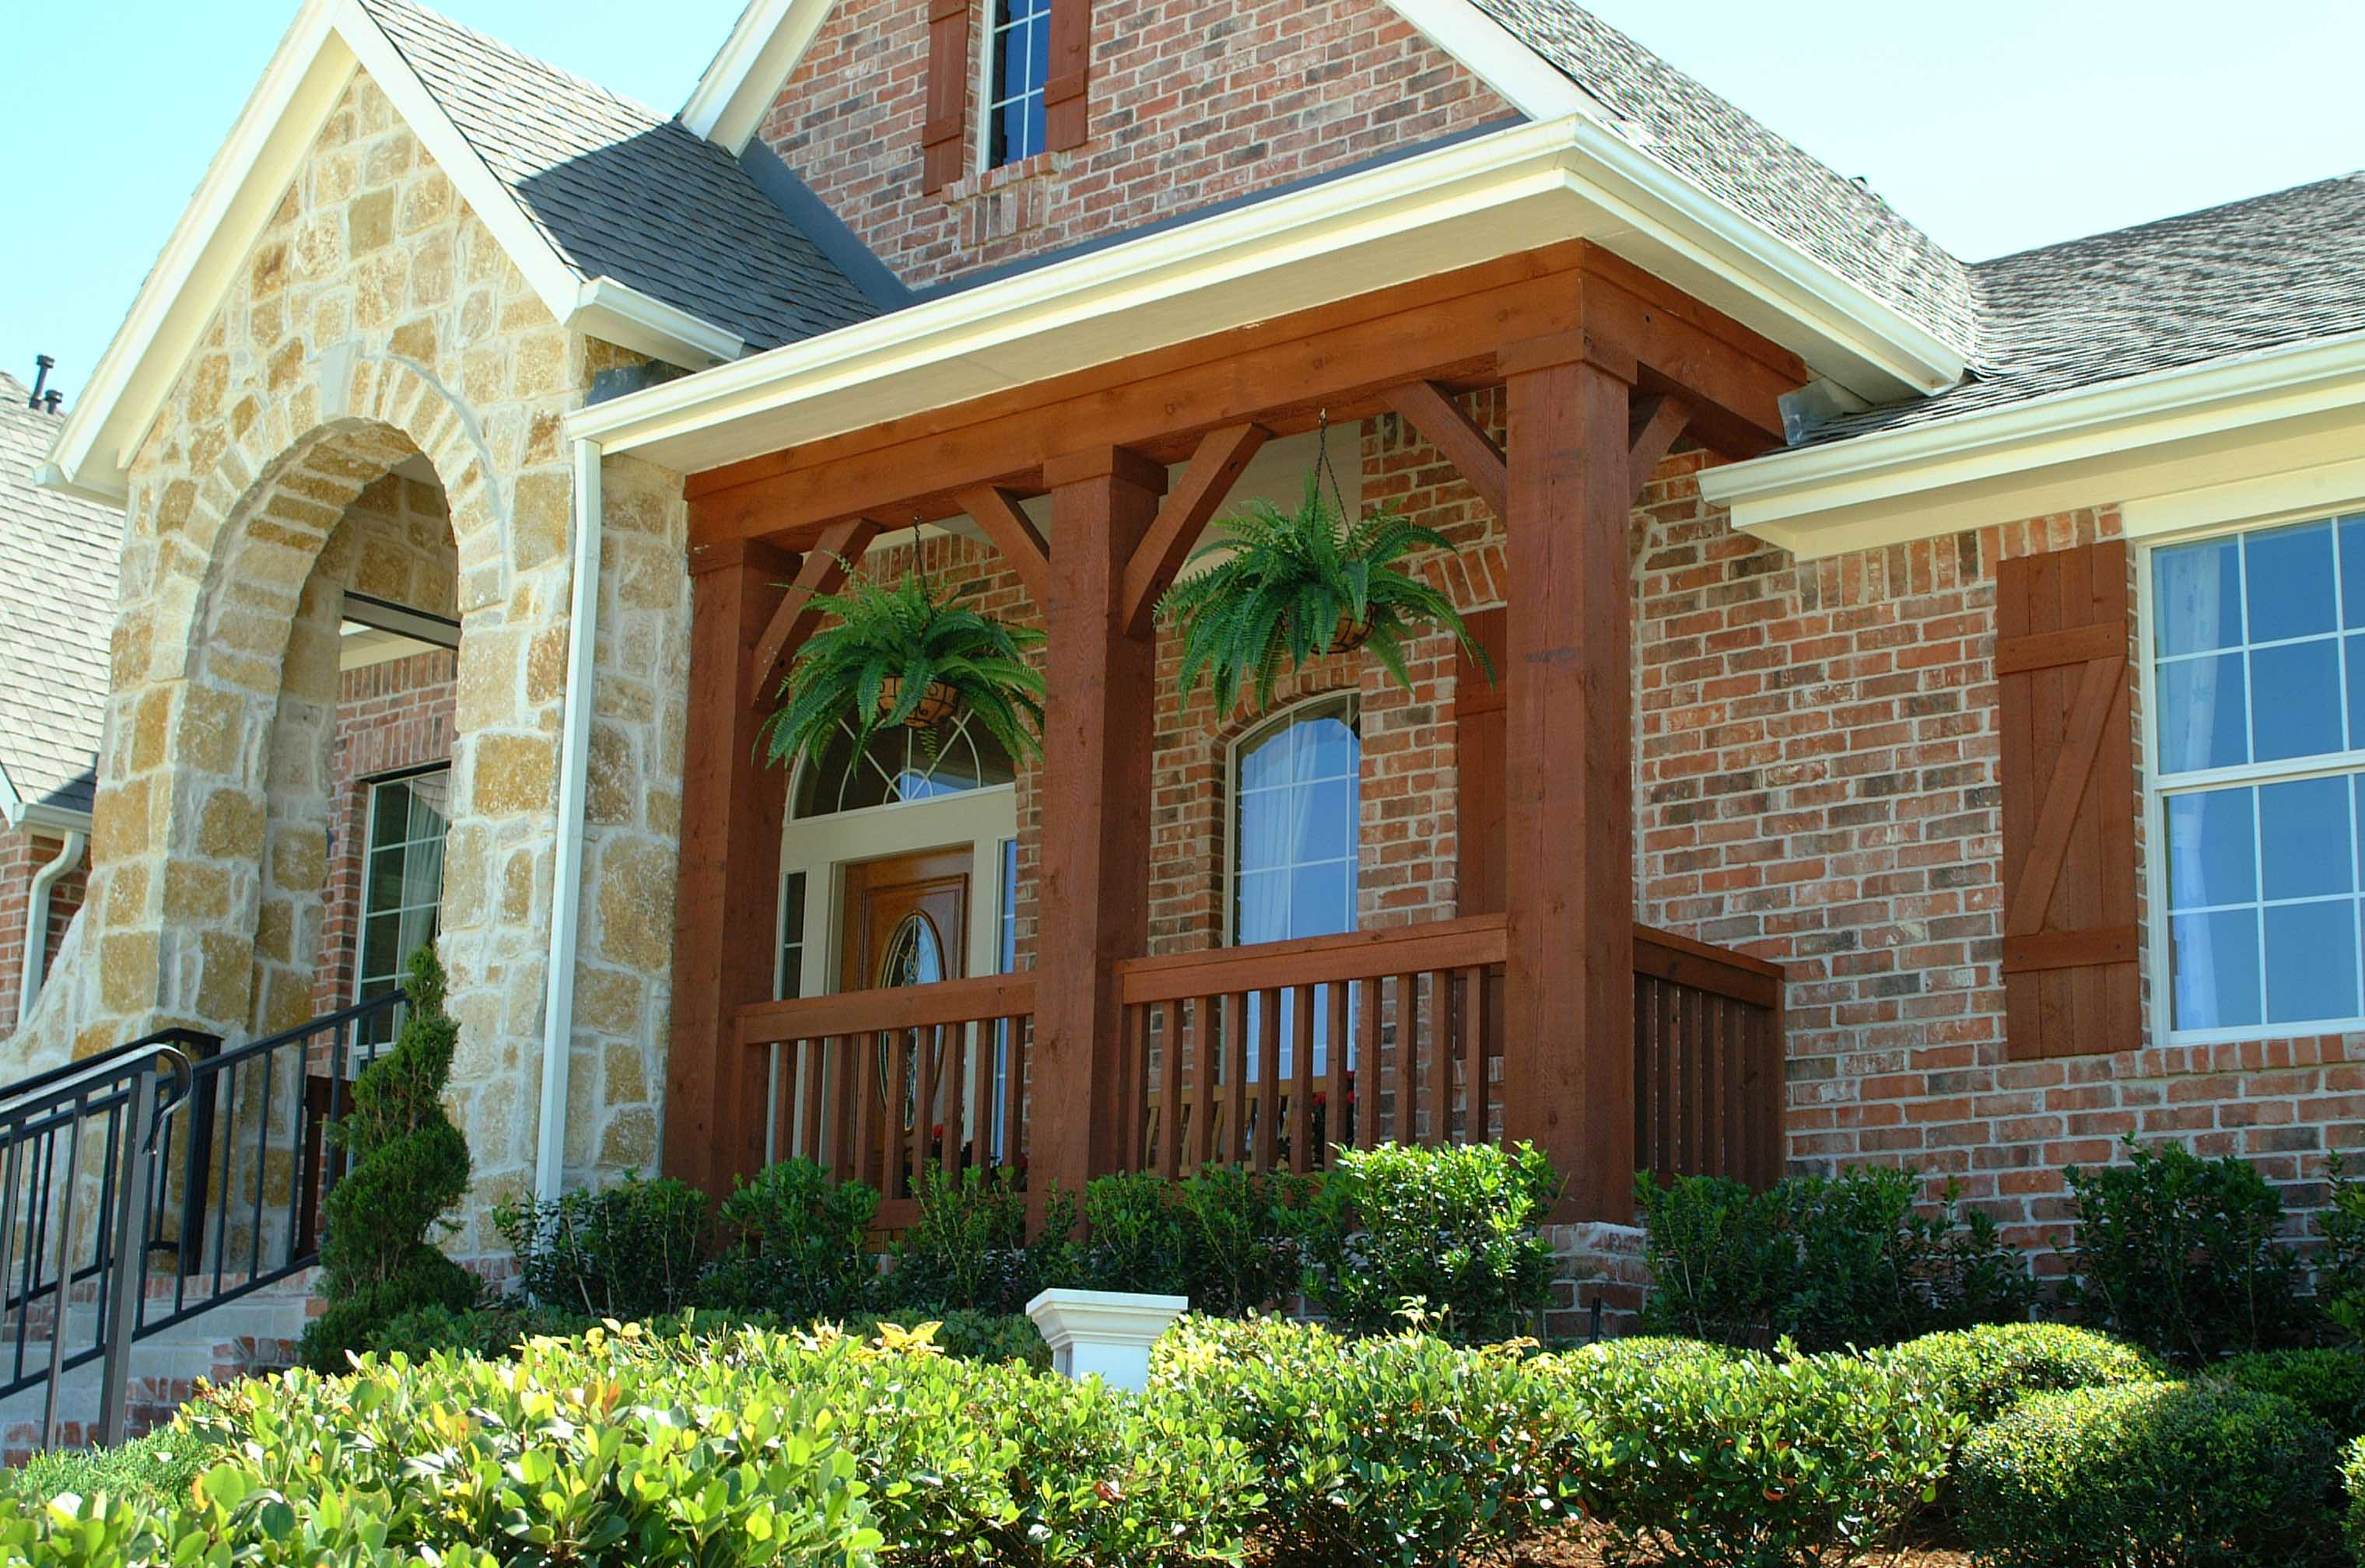 Exterior house painting sealant specialists stain and seal company dfw dallas - Exterior house painting costs property ...